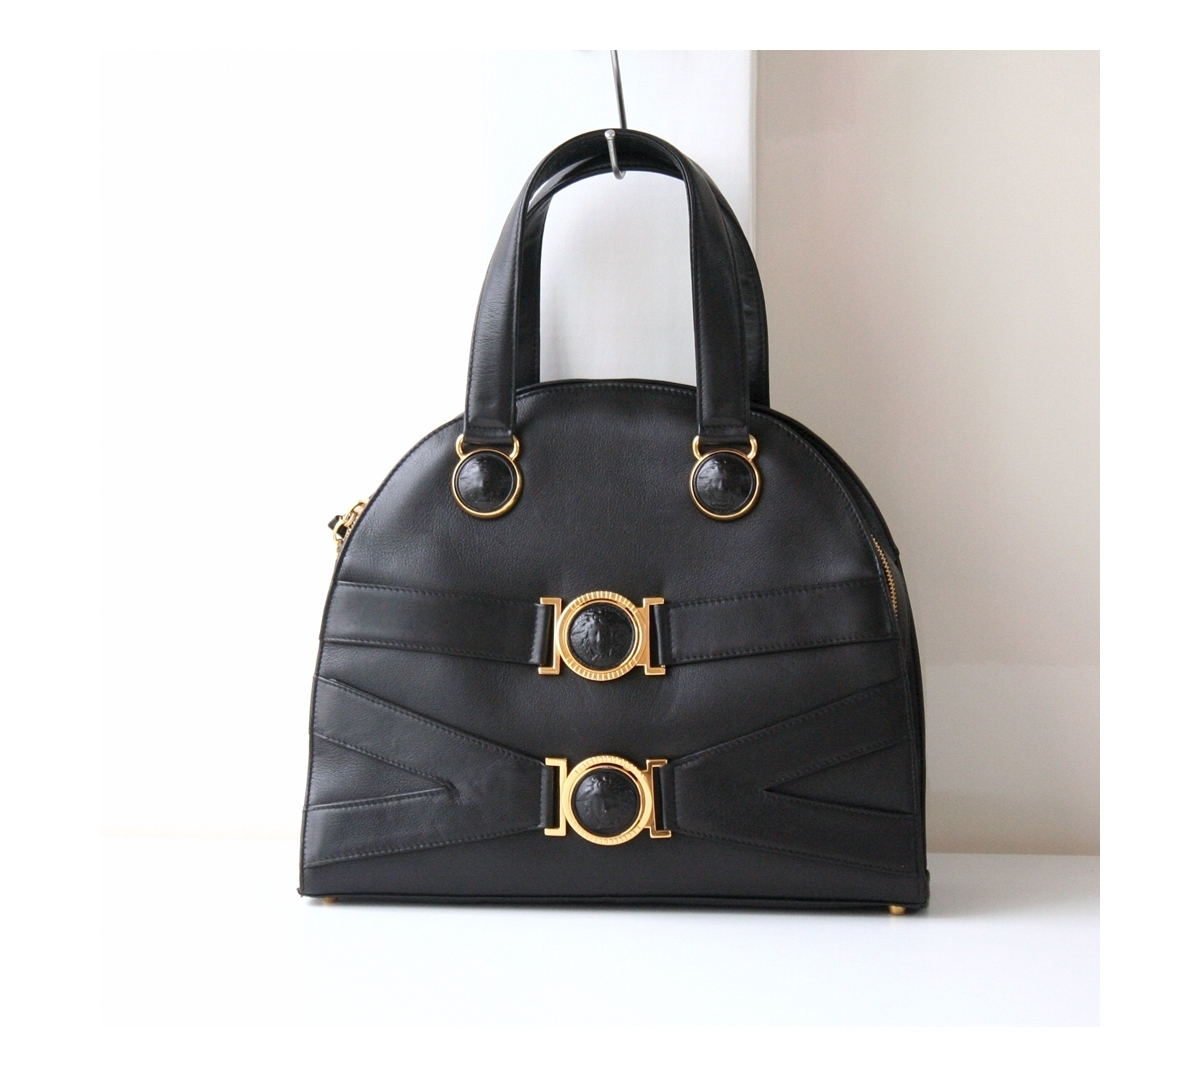 160919 01 01. 160919 01 01. Previous. Gianni Versace Bag Black Medusa  Leather Tote Authentic Vintage Purse 5b0a8e0e6f591